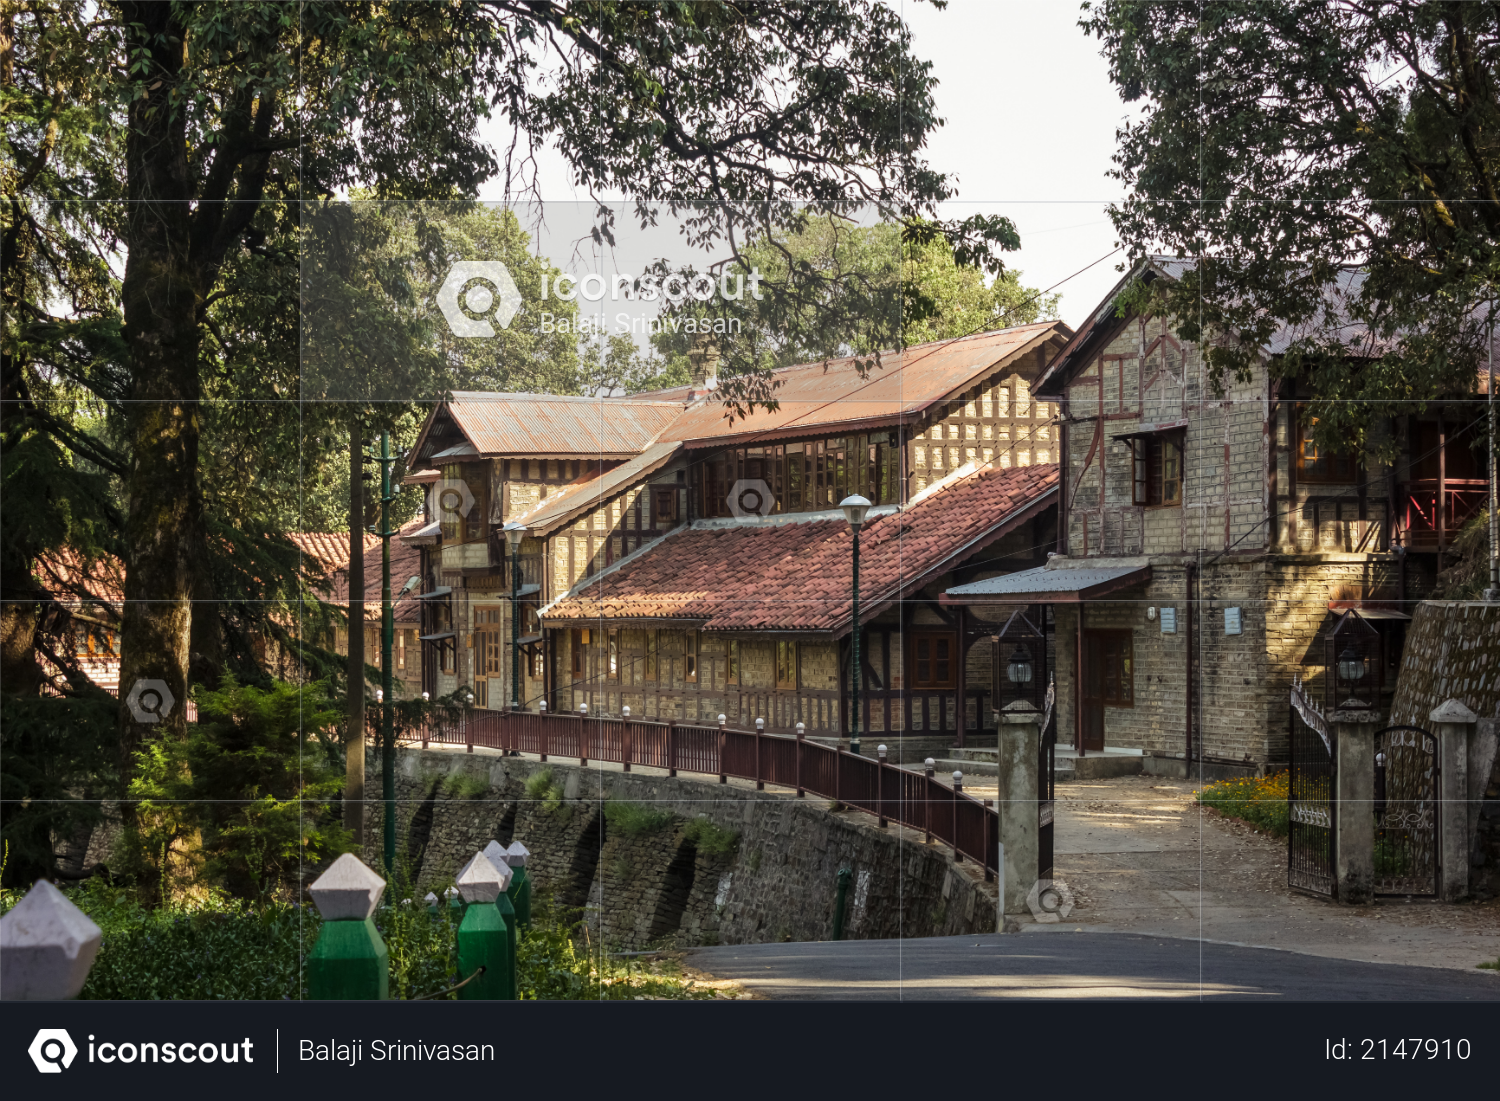 Shimla, Himachal Pradesh, India - May 2012: An old colonial era building made of stone in the Himalayan hill station. Photo